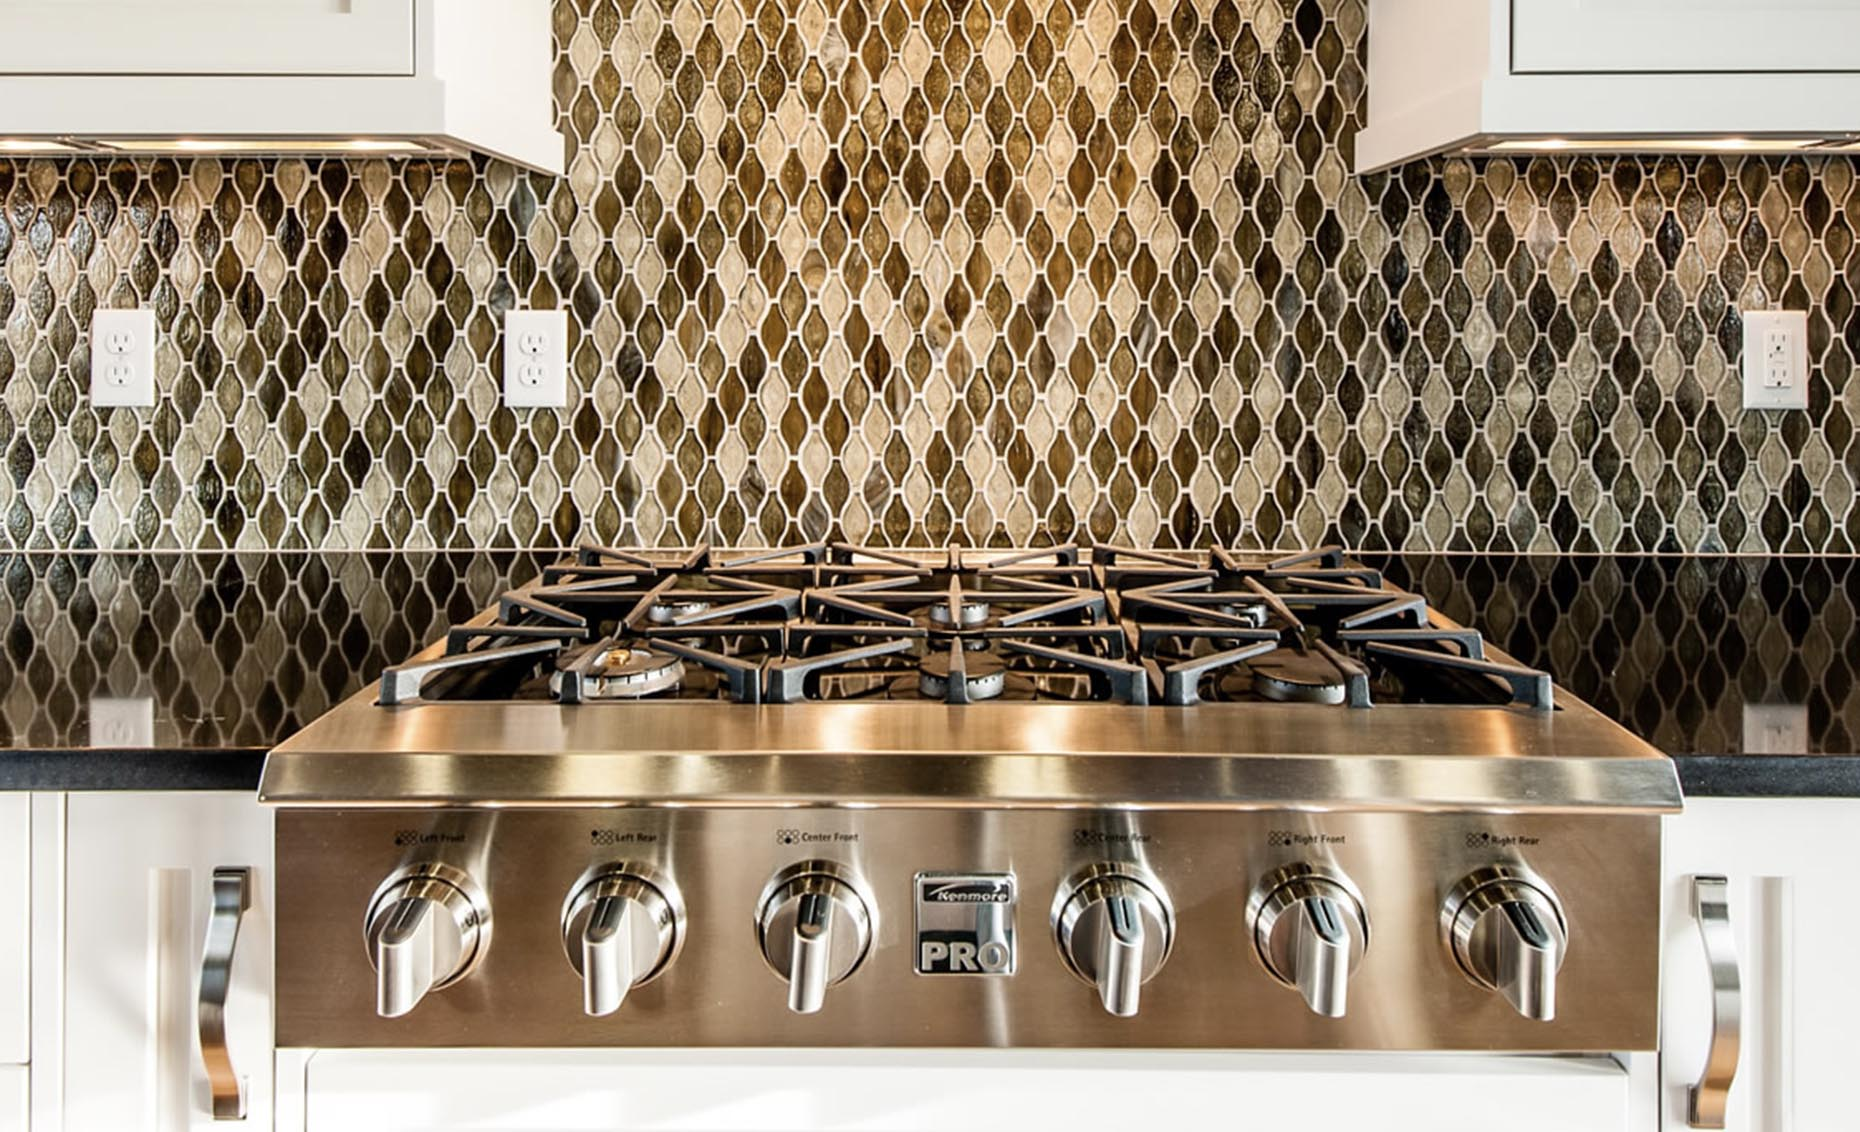 The Heavens Way House Stainless Steel Kenmore Gas Range Stovetop